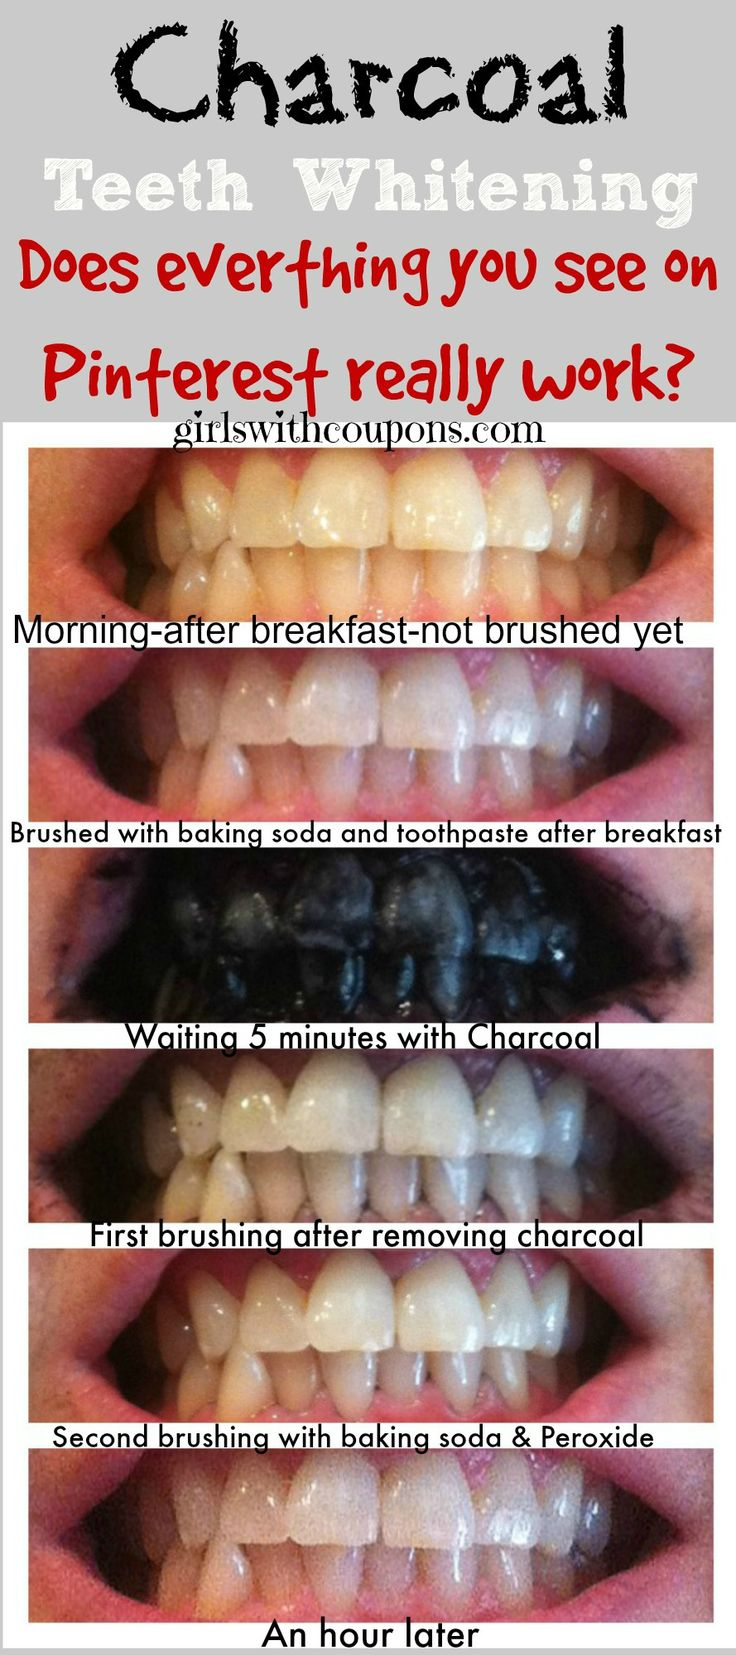 Colgate teeth whitening teeth whitening products pinterest teeth - I Saw A Pin On My Favorite Site Ever Pinterest The Other Day It Diy Teeth Whitening